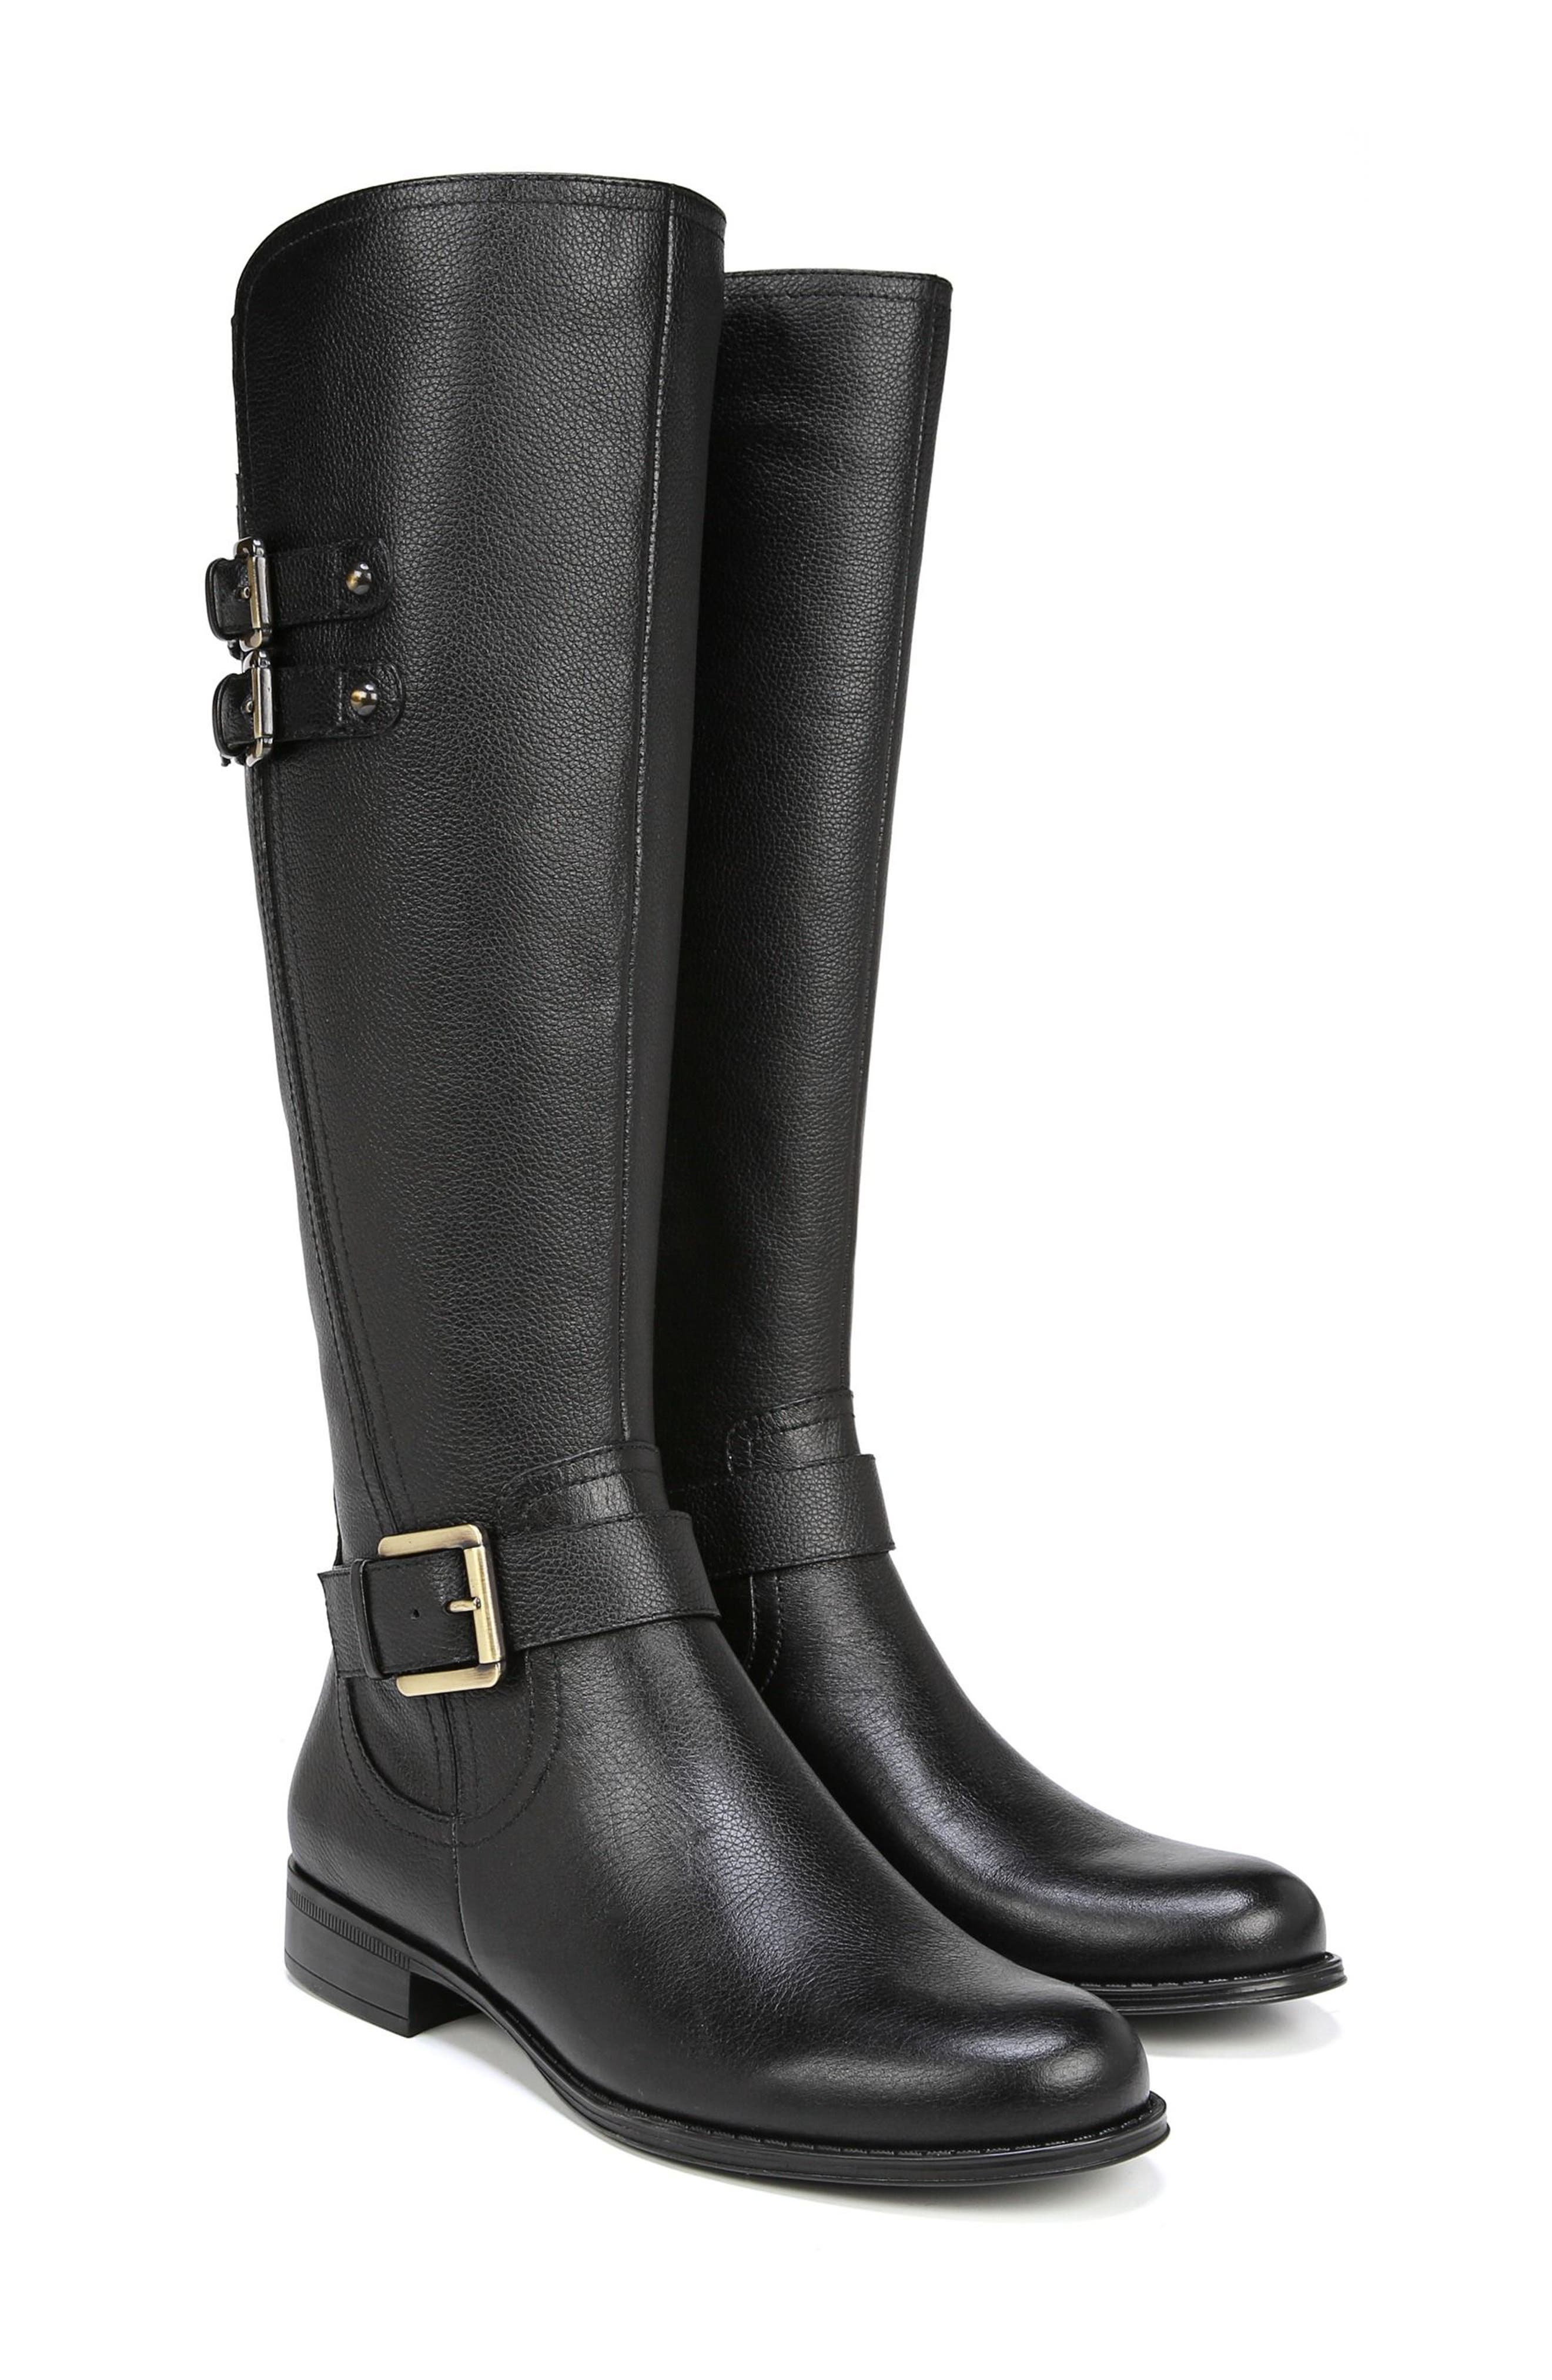 Jessie Knee High Riding Boot,                             Alternate thumbnail 9, color,                             BLACK LEATHER